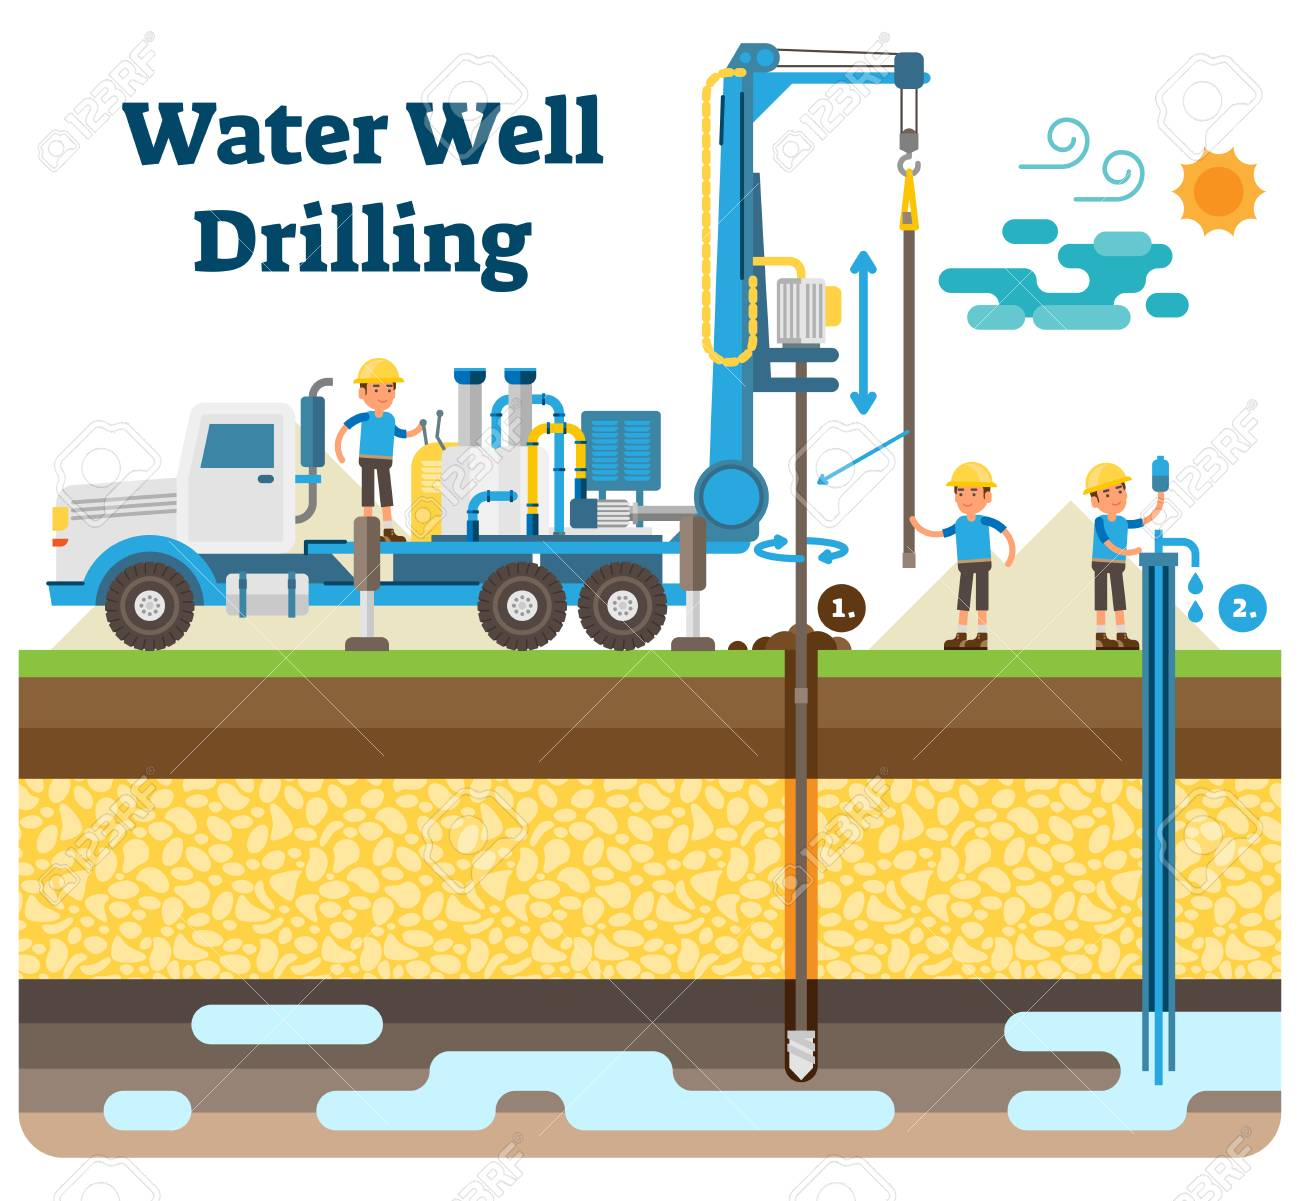 Water well drilling vector illustration diagram with derrick, water pipe, drilling process, workers and extracting clean drinking water from the ground. - 99603028